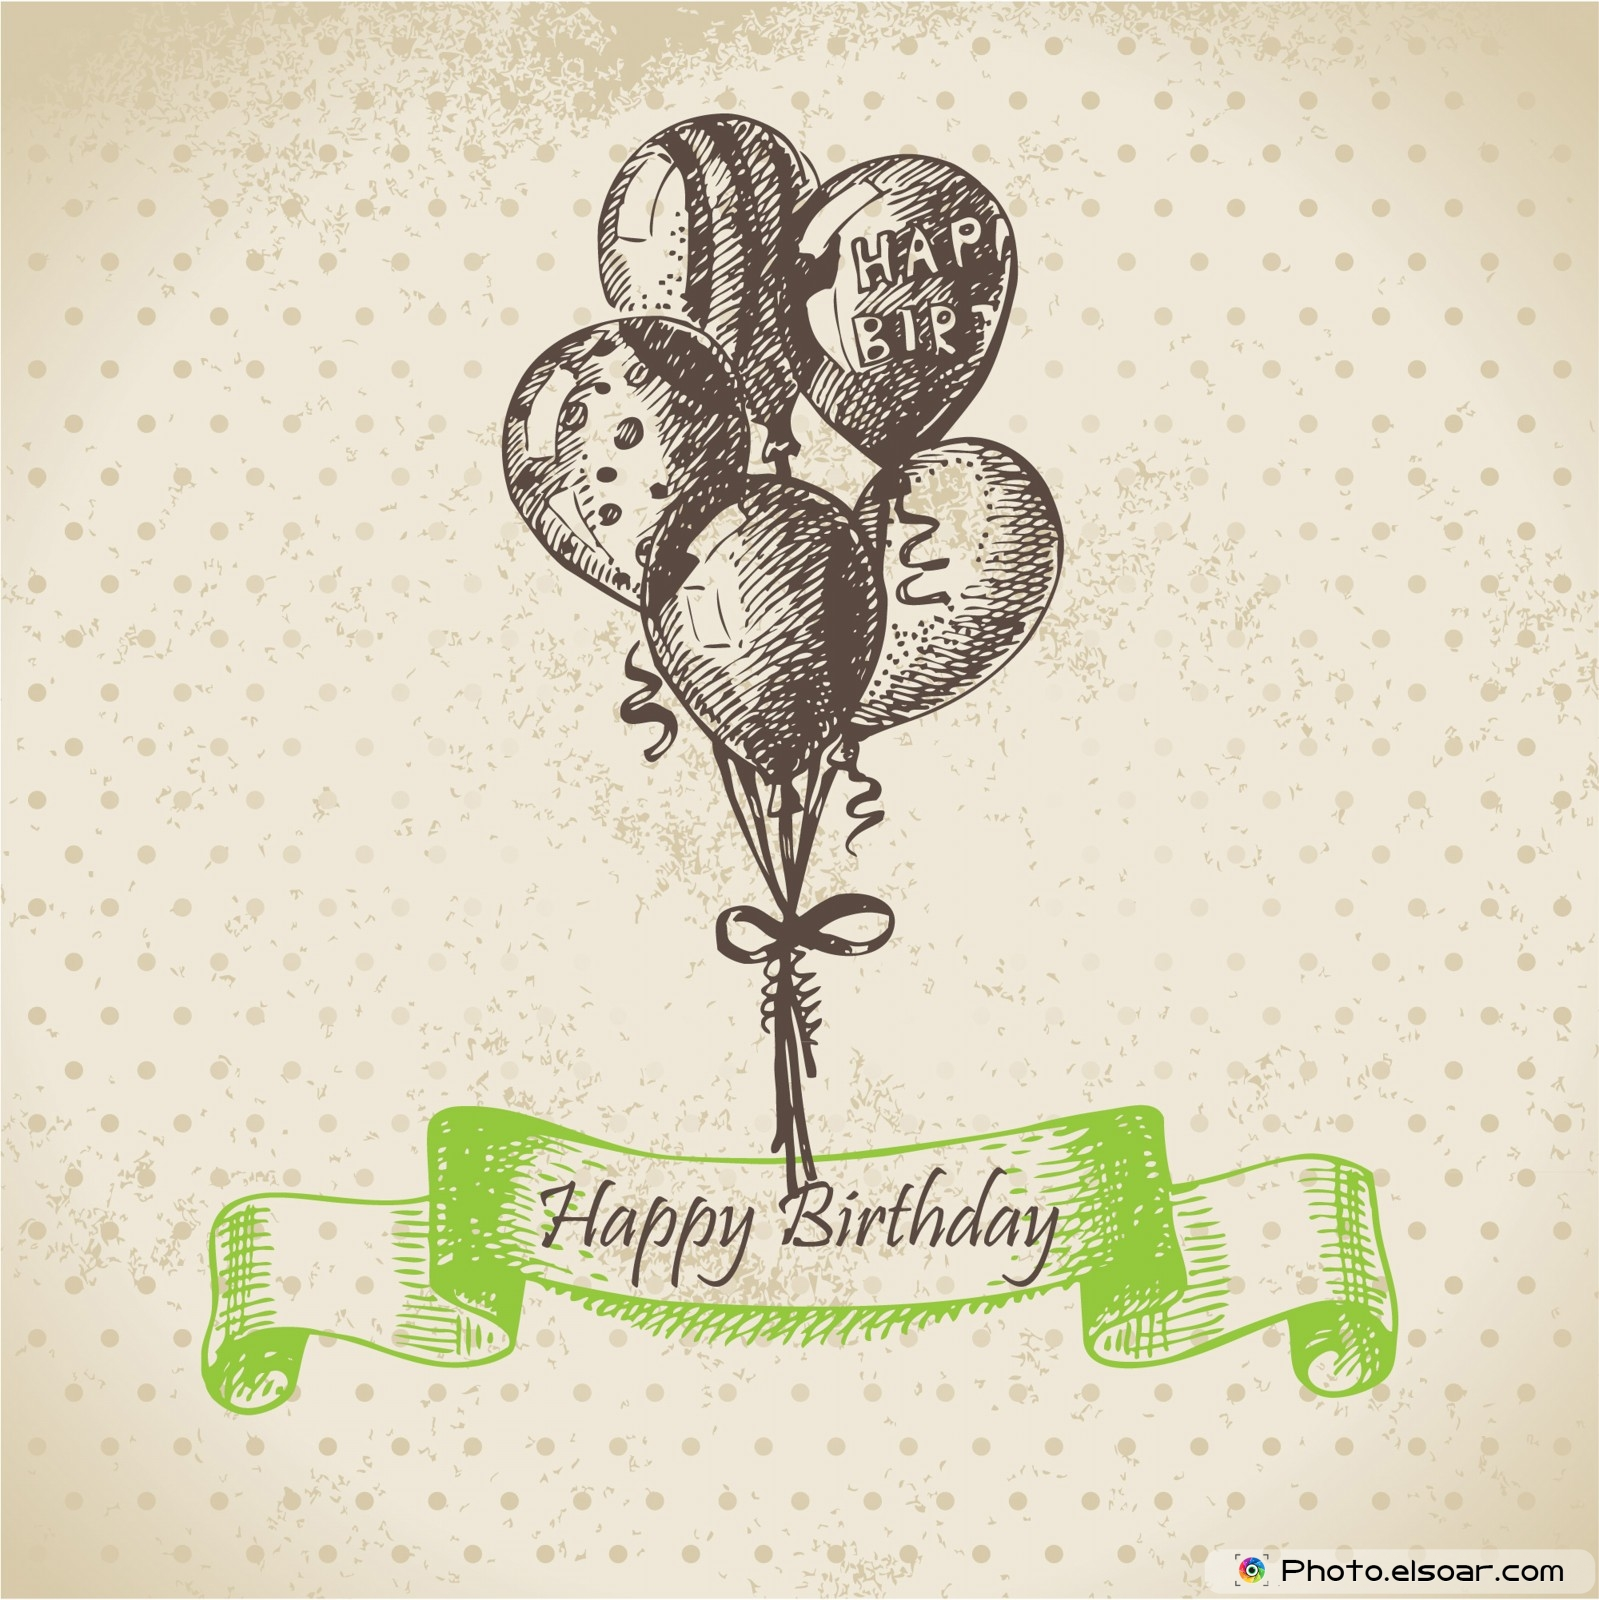 22 Happy BirthDay Cards on Bright Backgrounds Elsoar – Birthday Cards Backgrounds